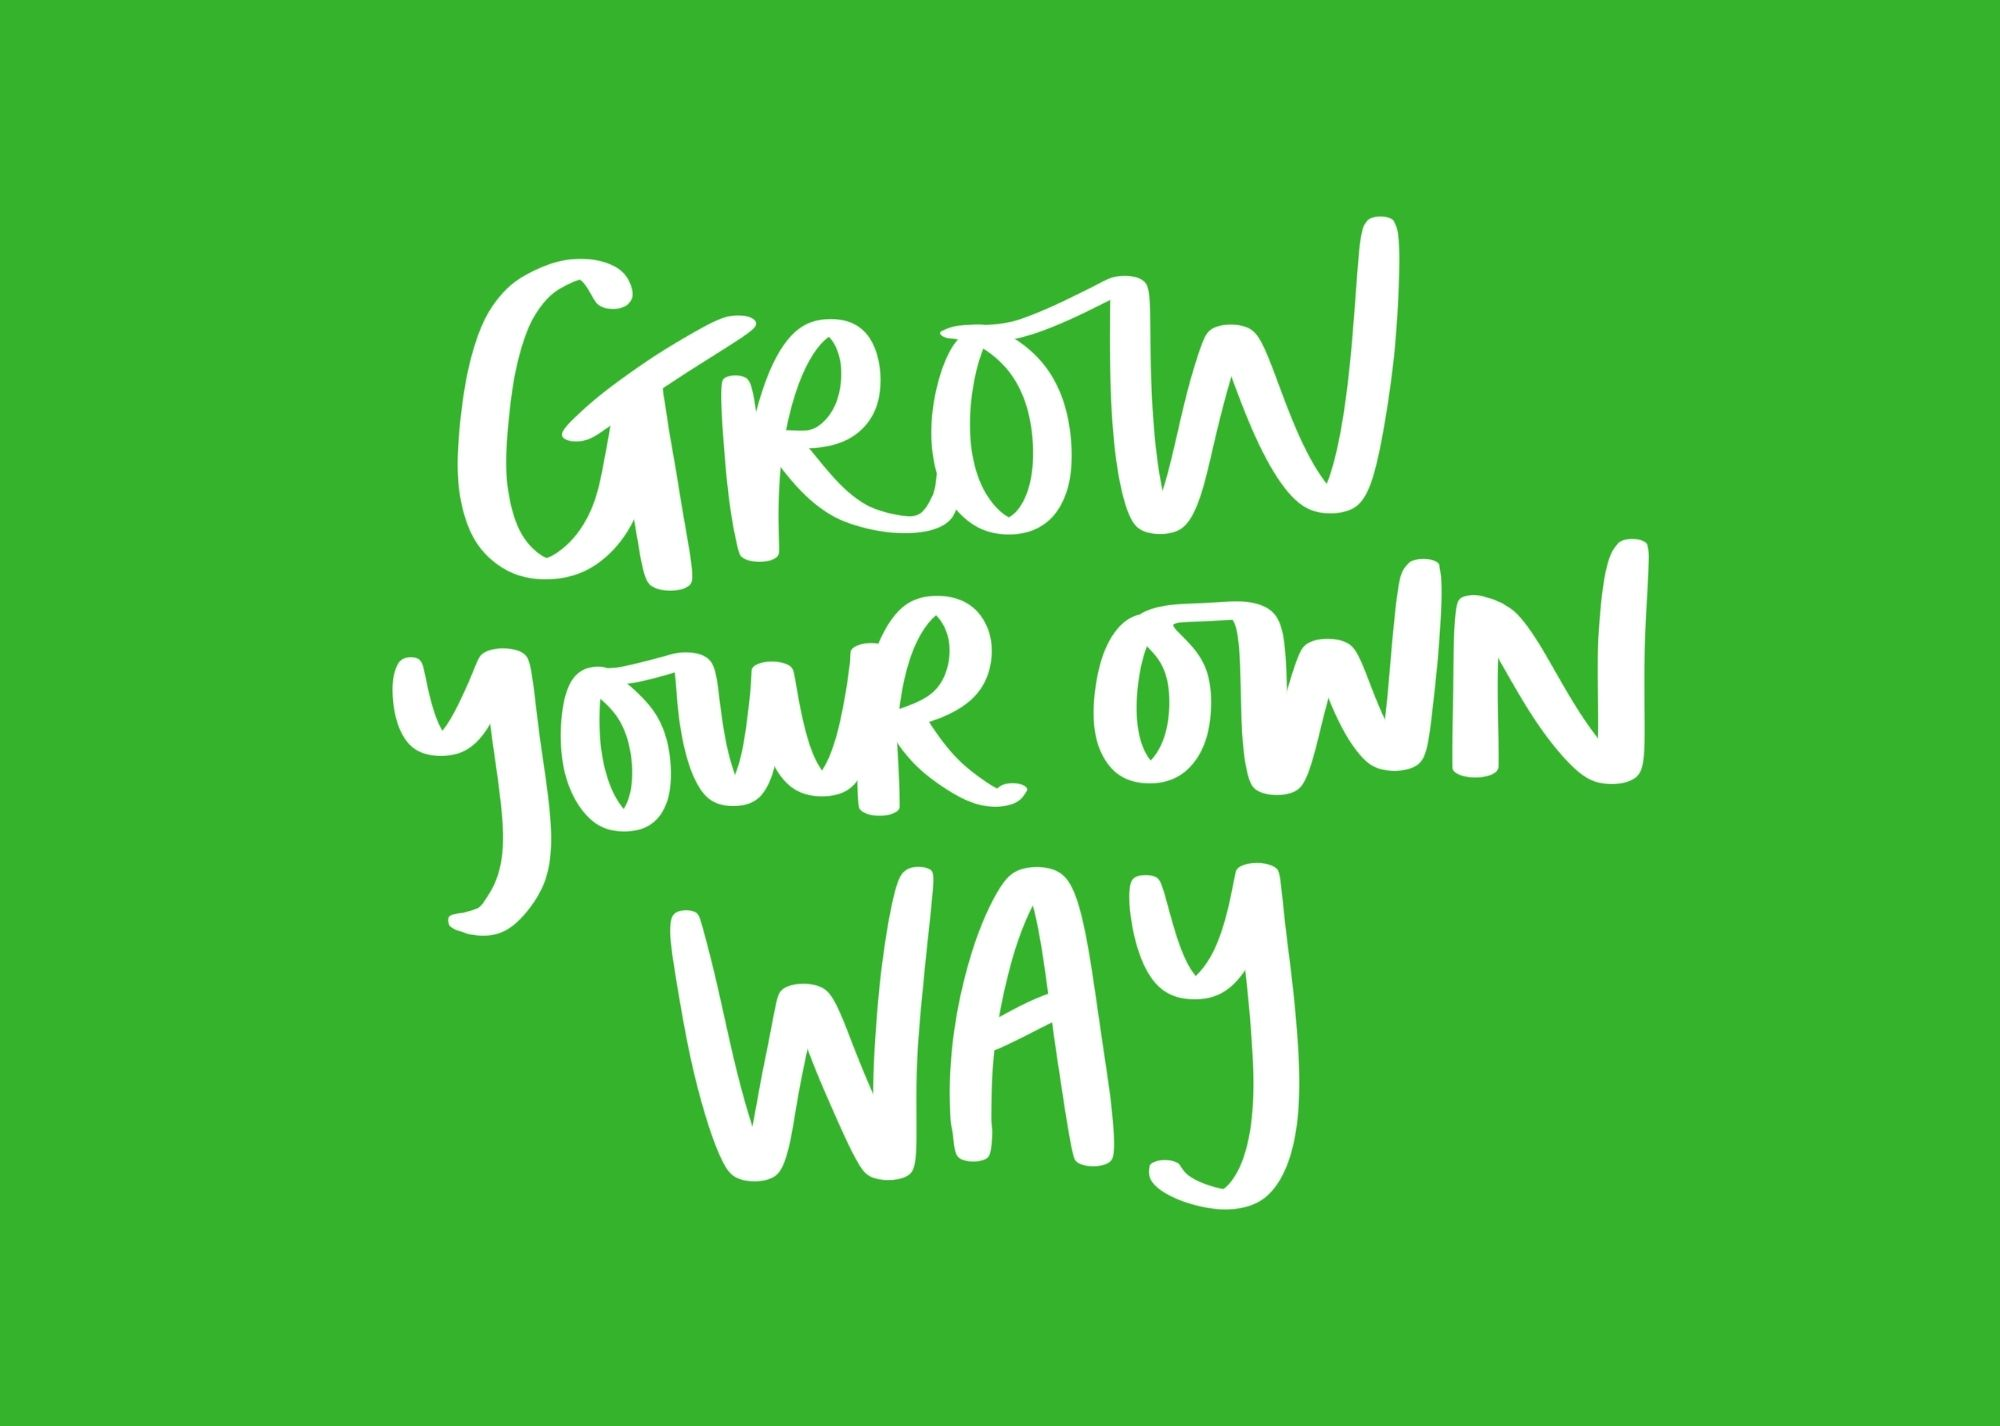 Grow your own way - spring green